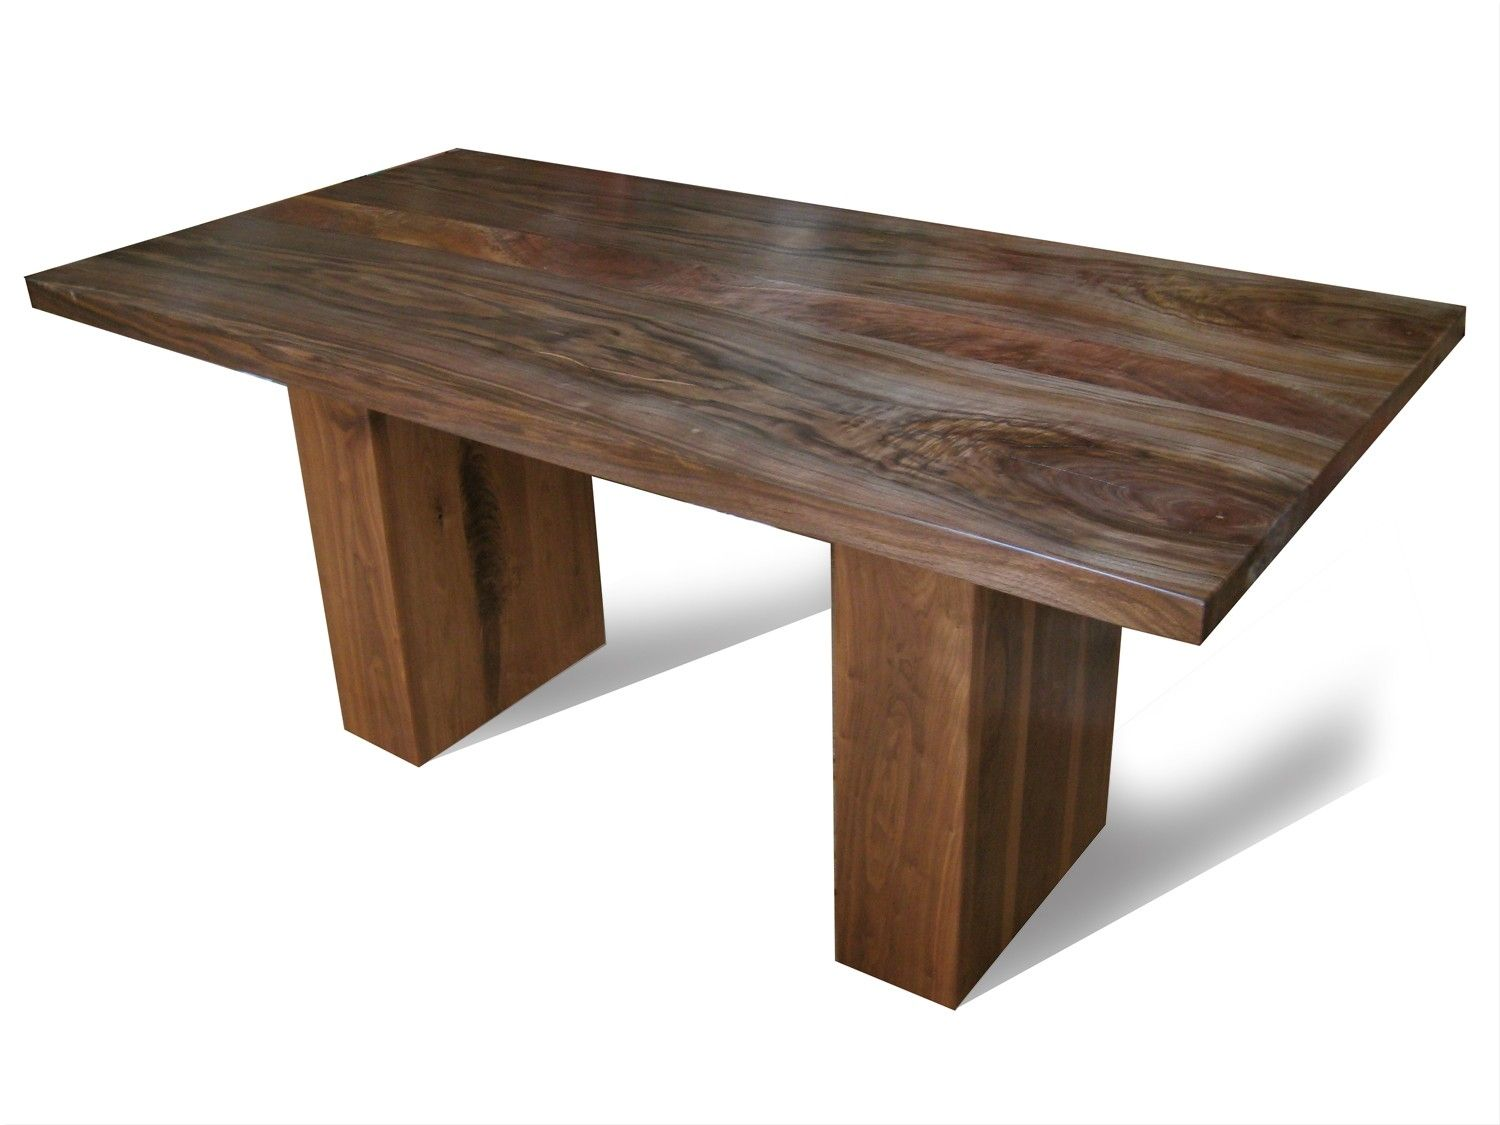 Custom made walnut dining table with pedestal legs by fix studio - Kitchen table bases ...